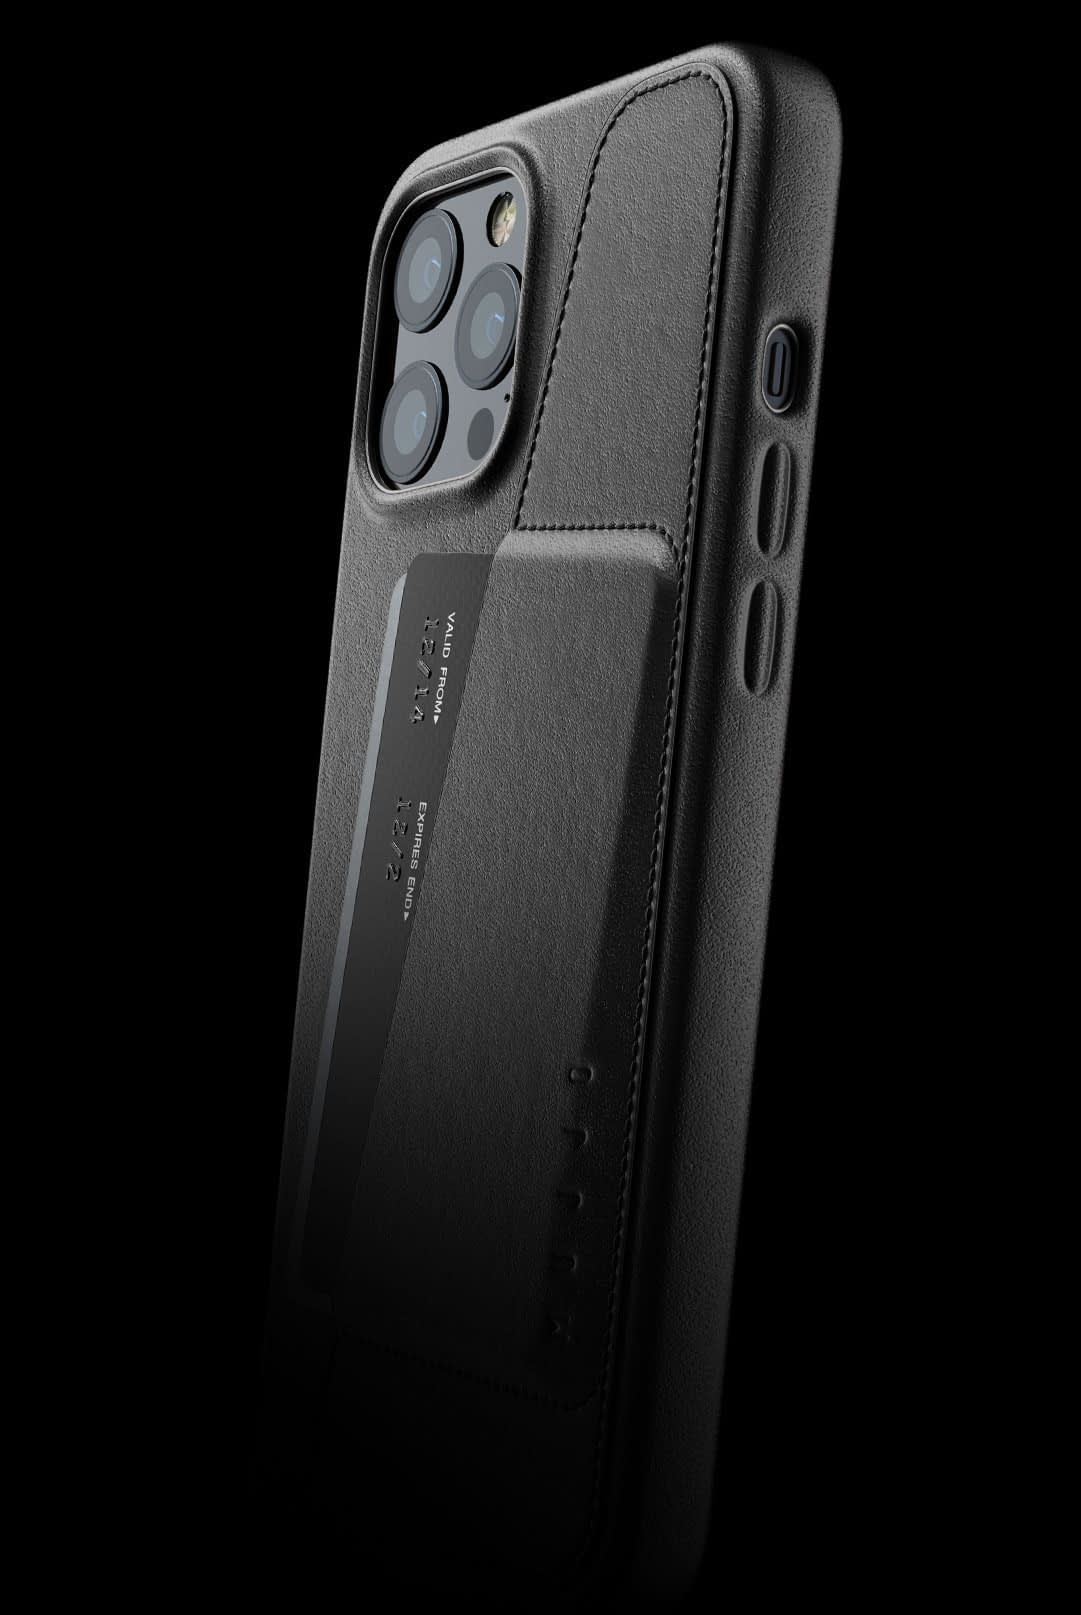 full leather wallet case for iphone 12 pro max black 002